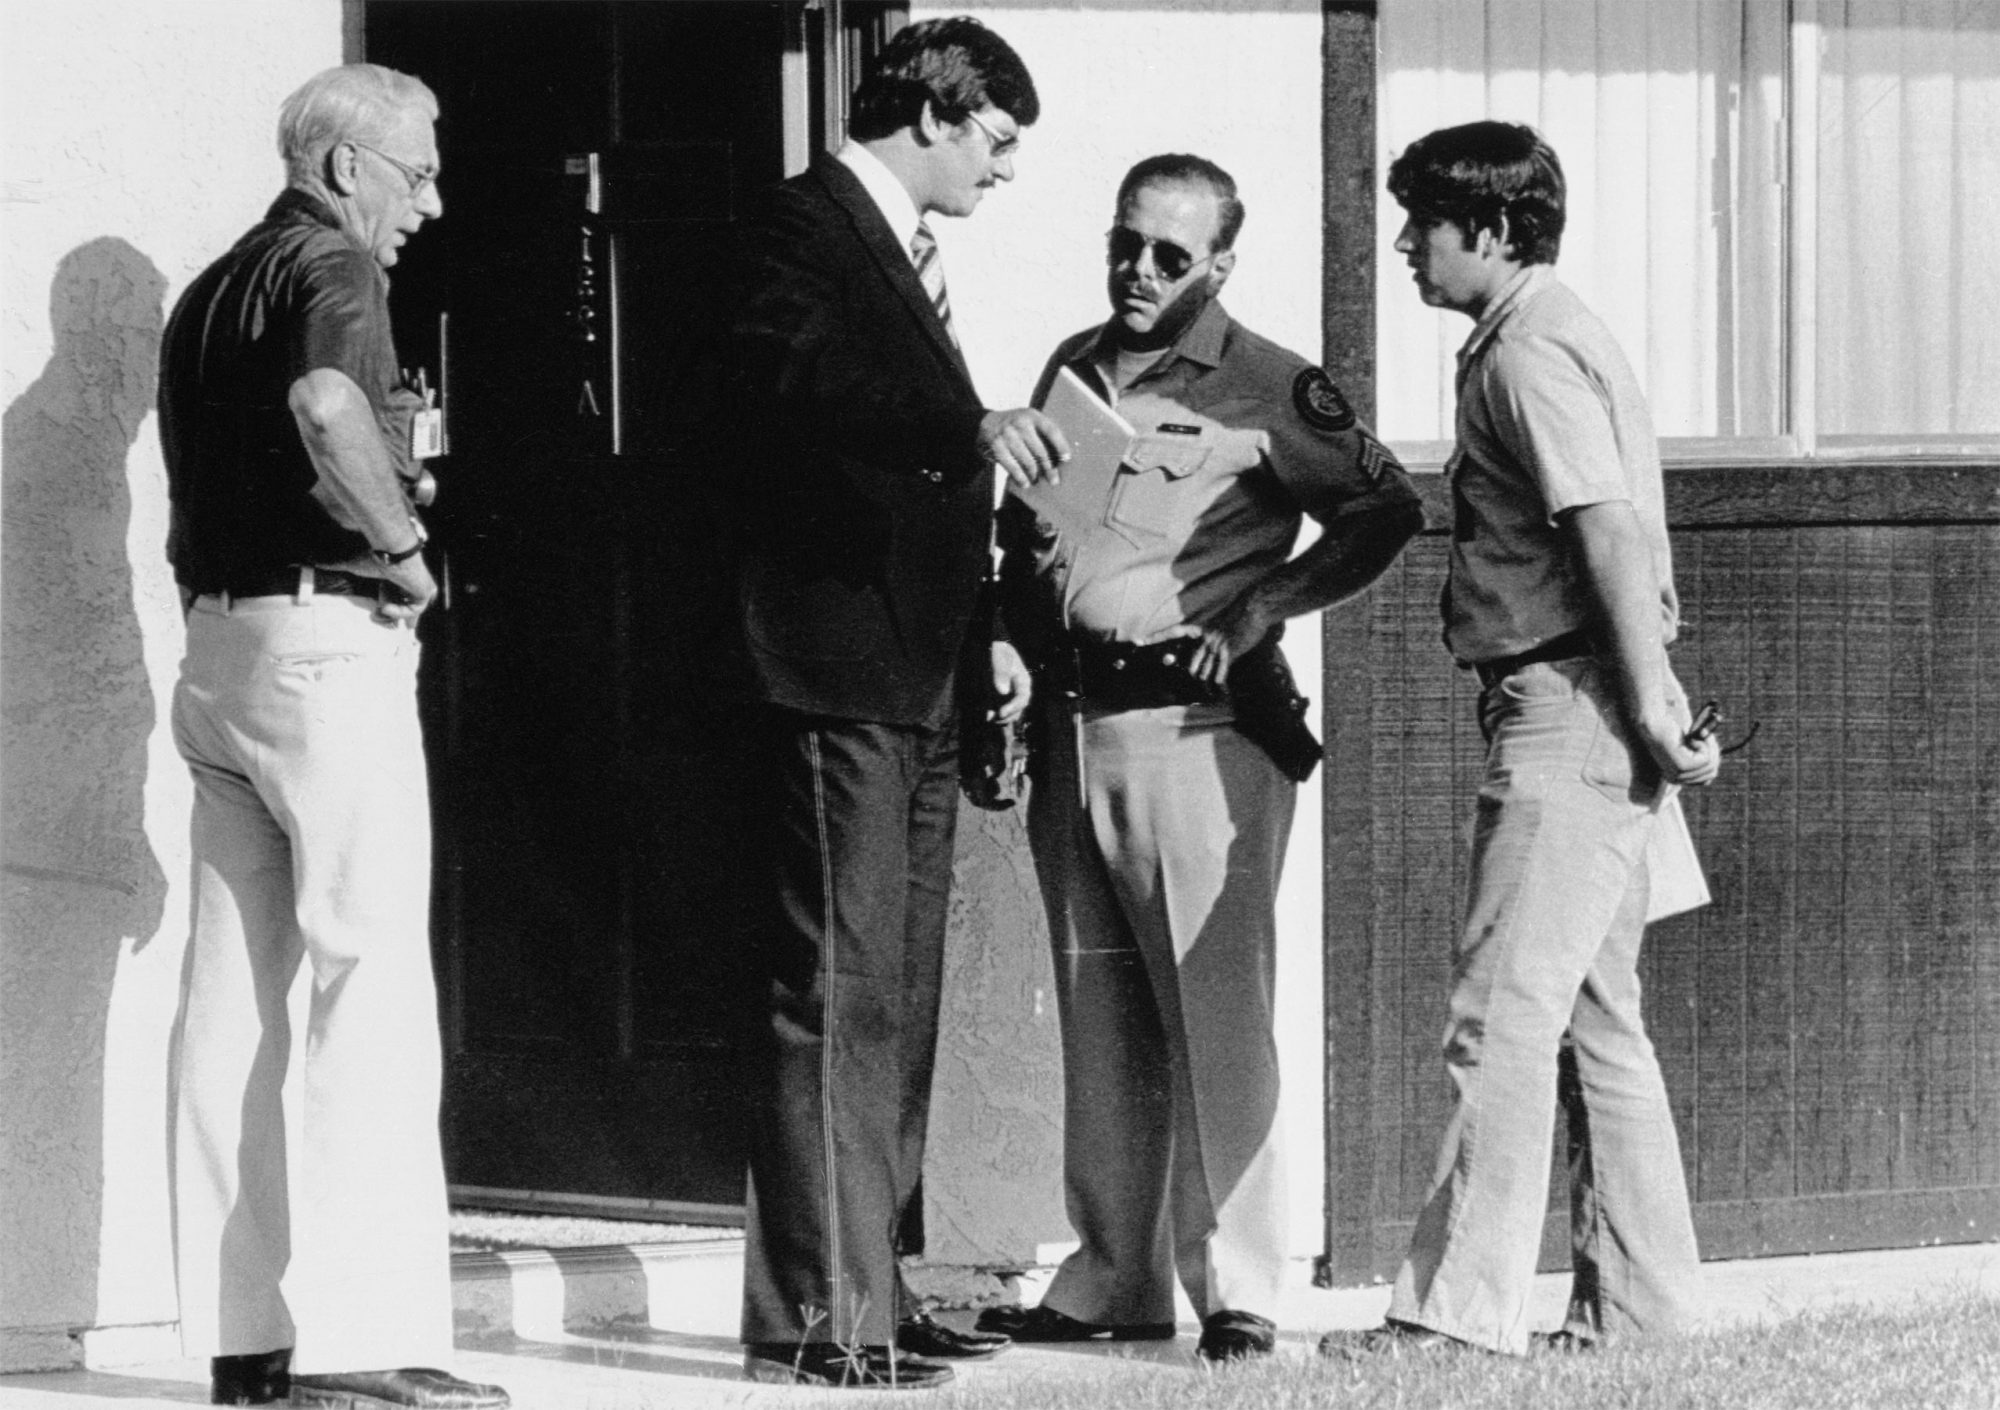 (Original Caption) Scotsdale, Arizona: Police gather outside the apartment where actor Bob Crane was beat to death 6/29. Crane, star of the old TV series Hogan's Heroe's apparently was attacked in his sleep in the early morning hours and hit on the head with a heavy instrument.